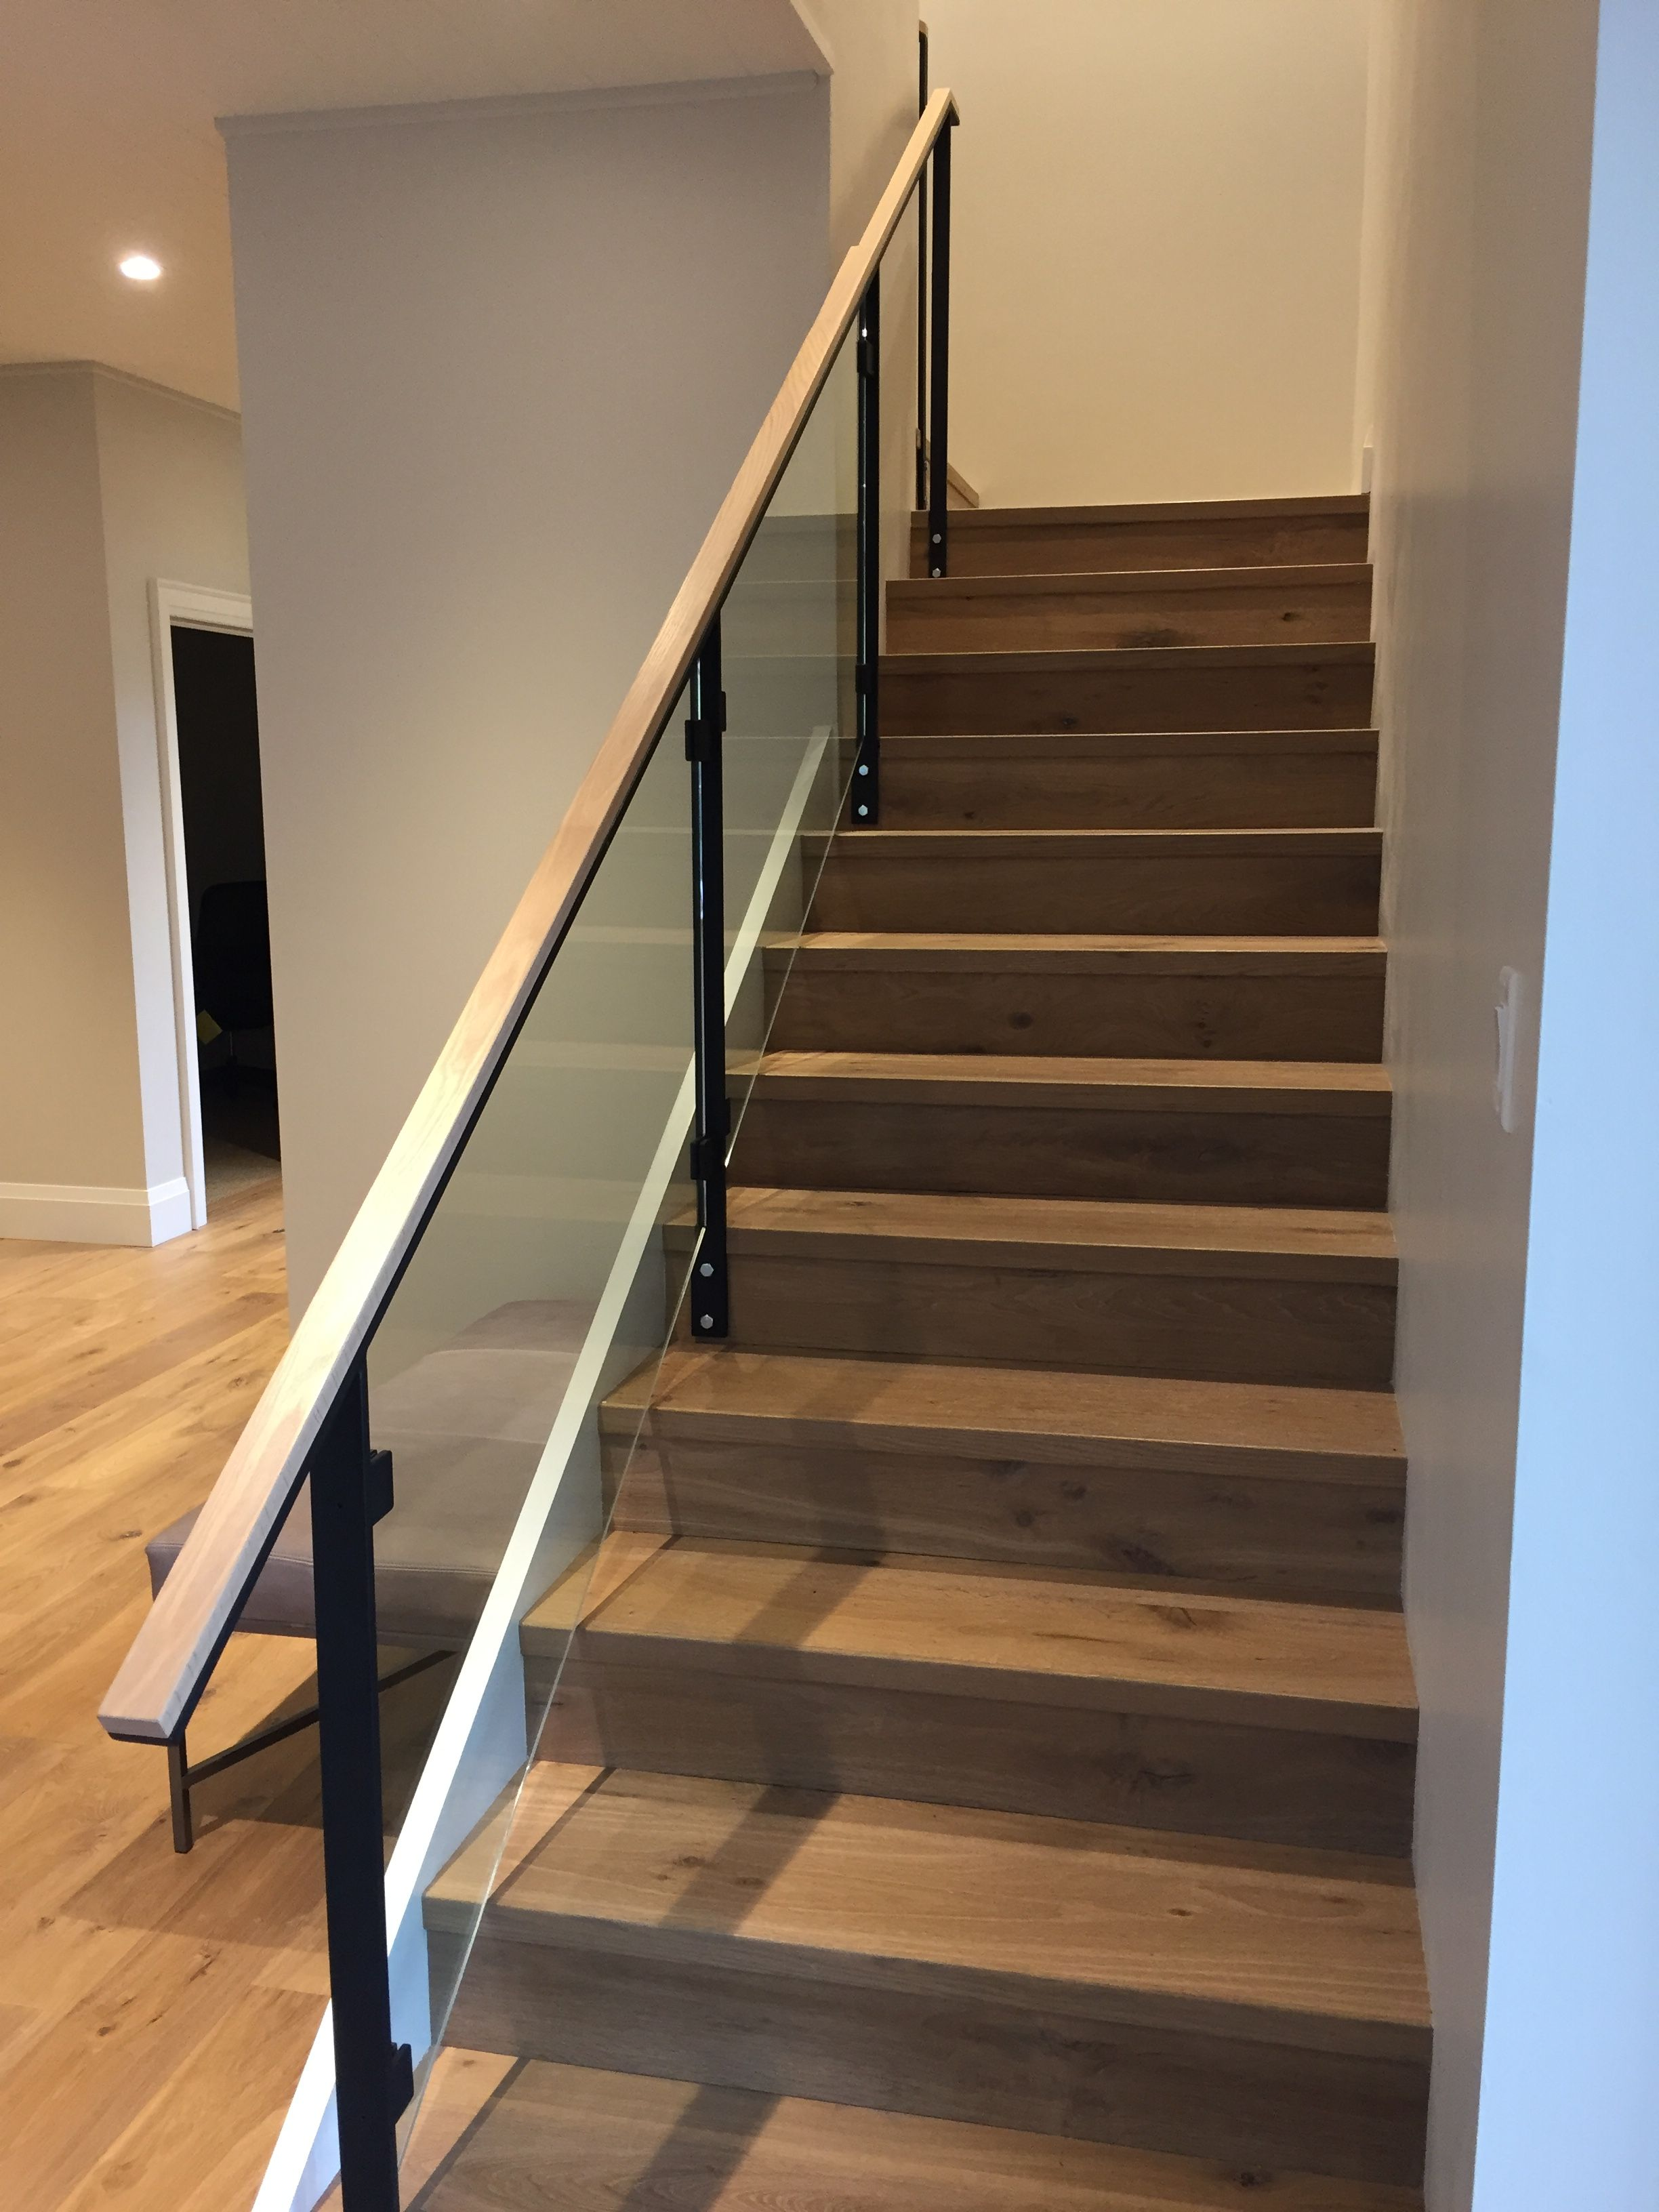 Best Stair Caps Made On Site From Lumber With Custom Stained 400 x 300